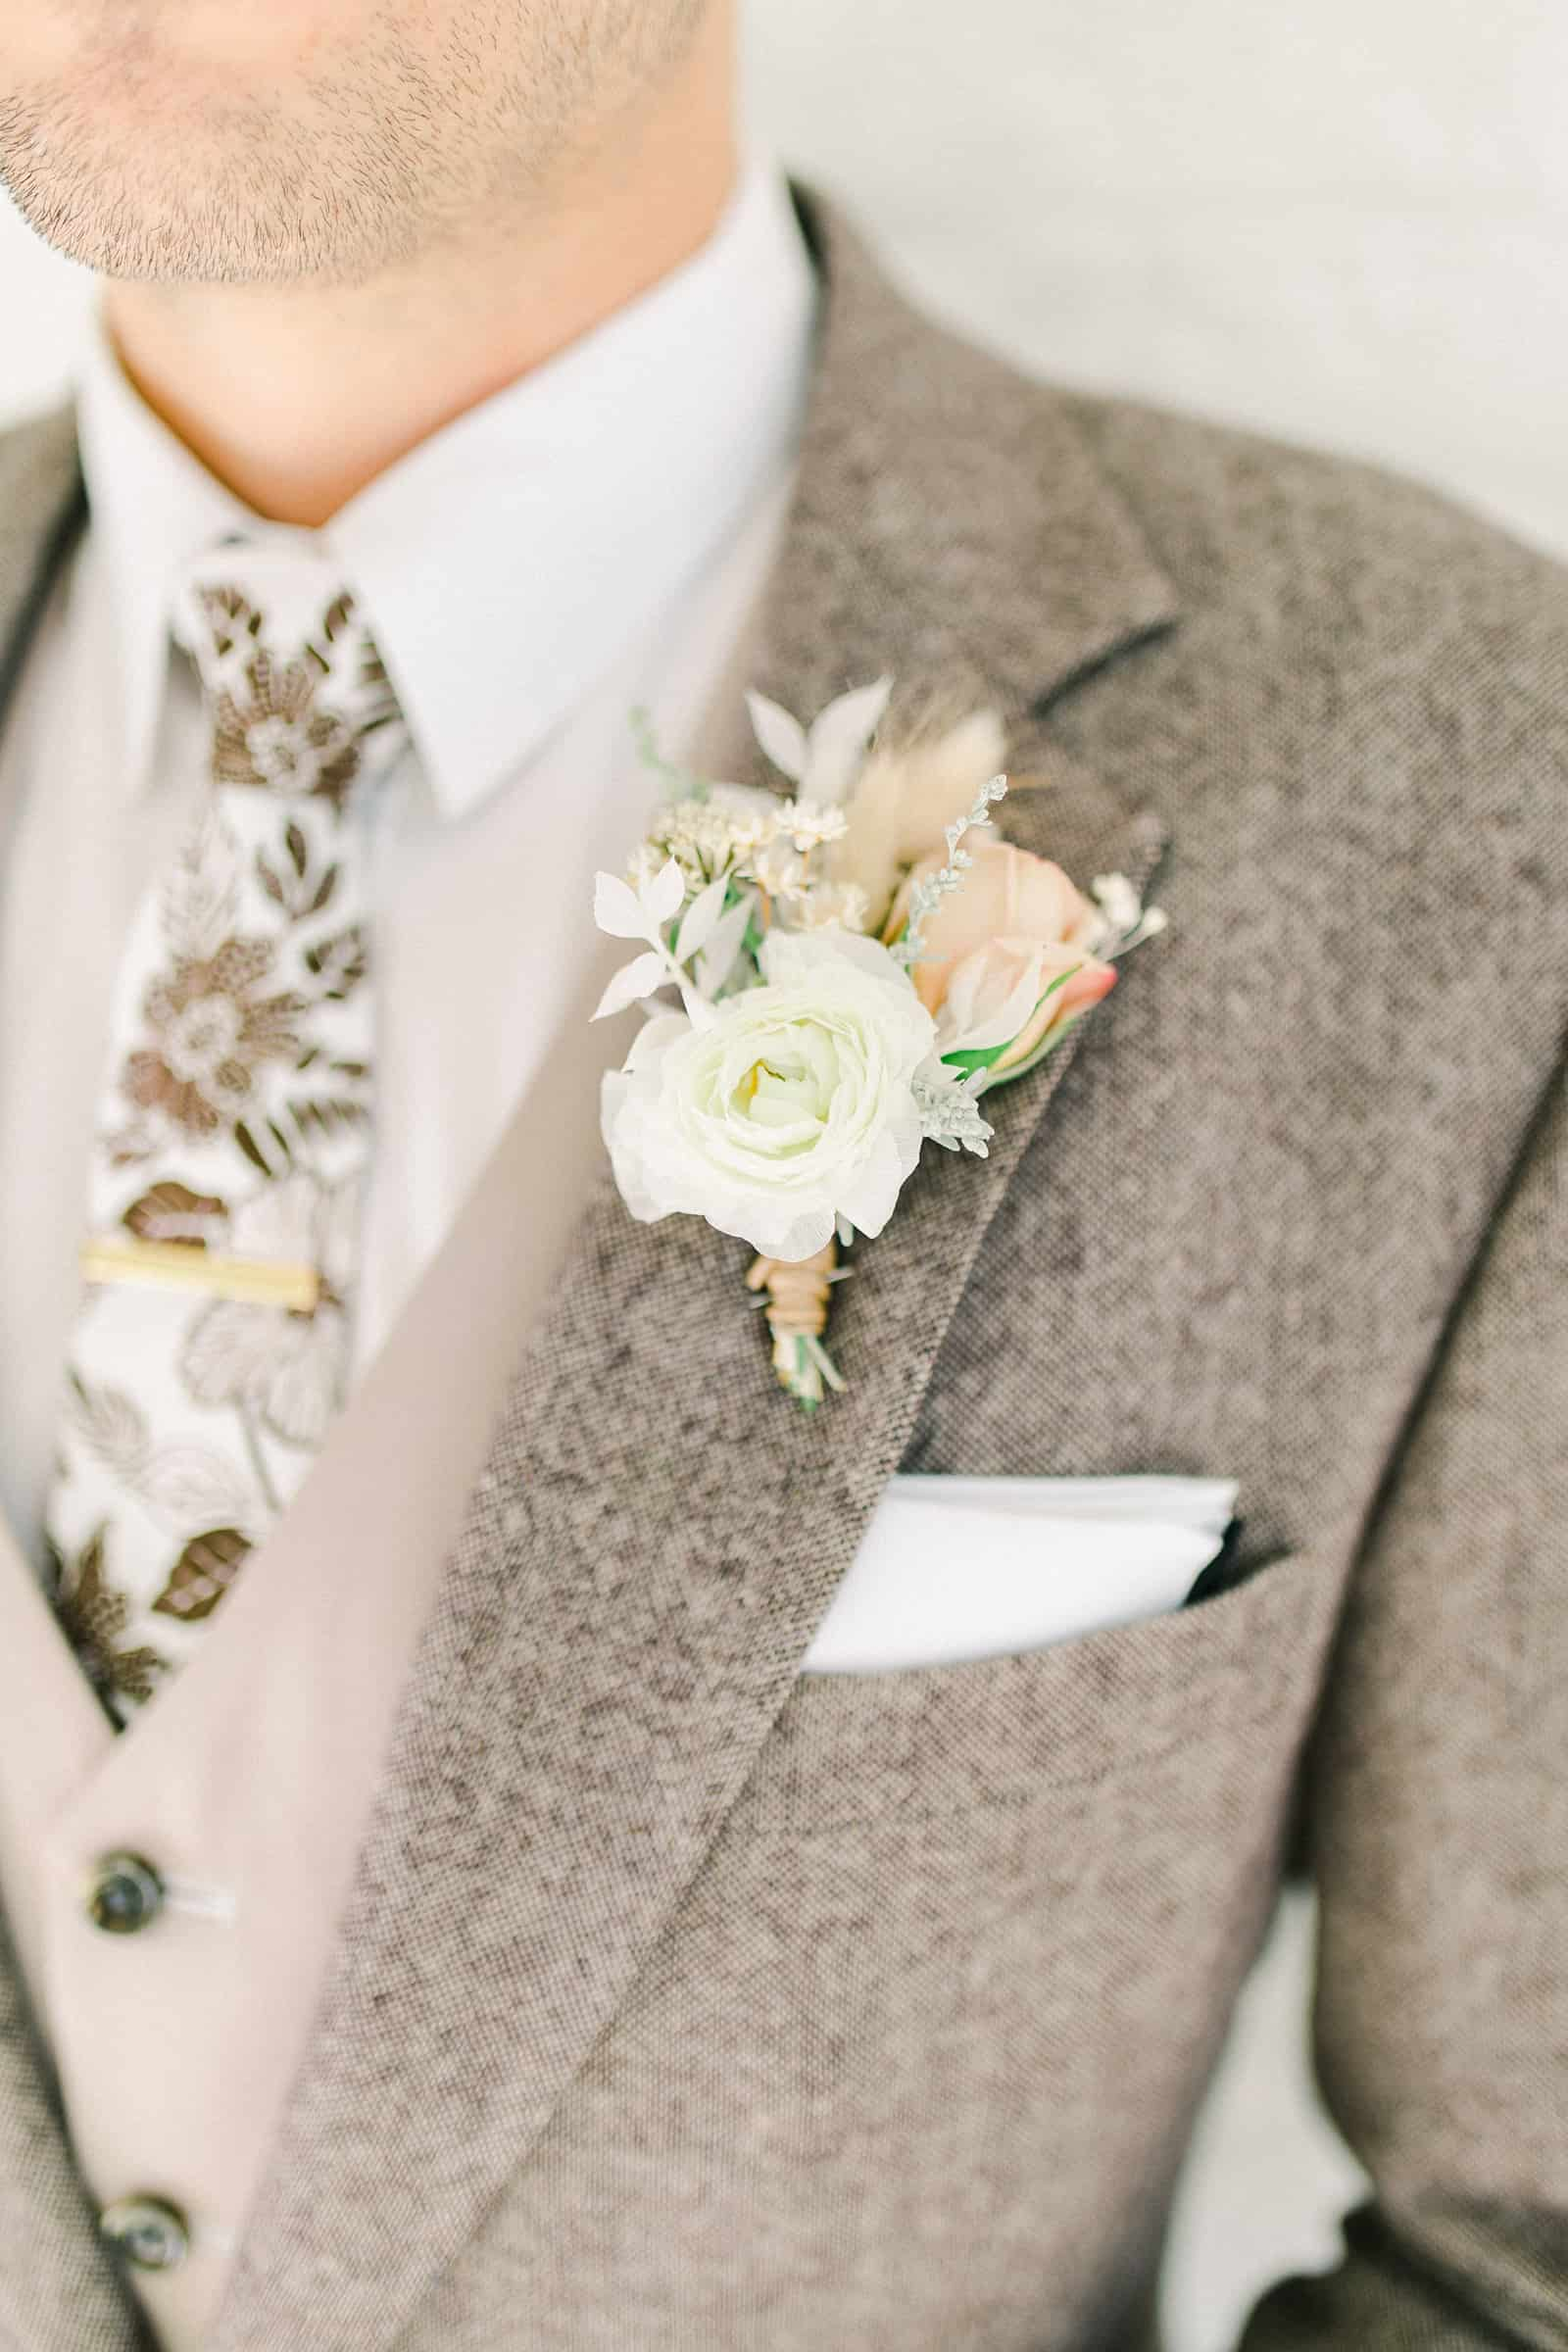 Modern groom wearing oatmeal gray custom three piece suit with fall floral tie and a vest, white neutral boutonniere